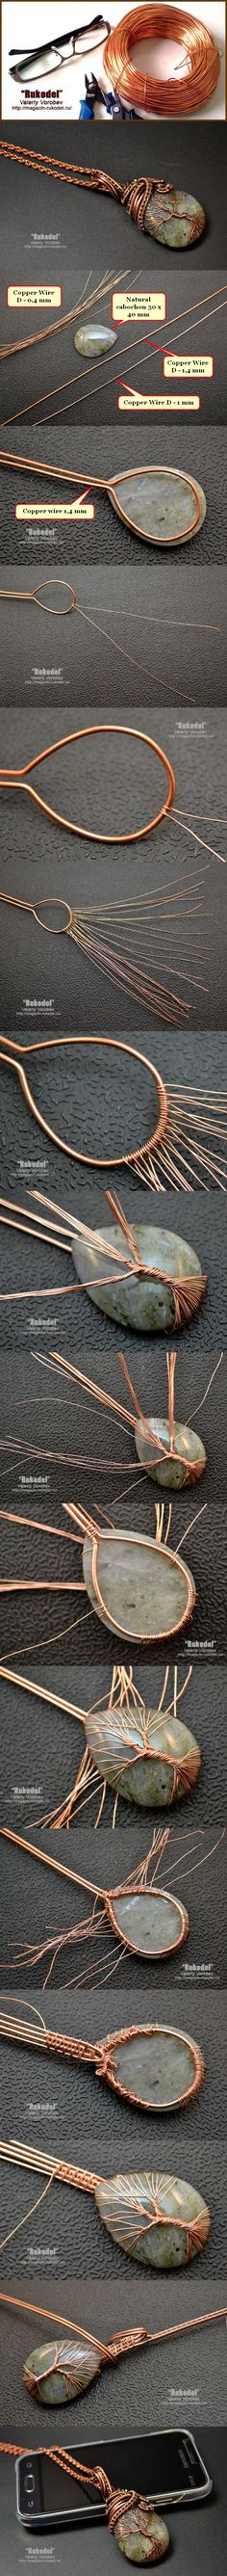 Simple wire wrap tree tutorial - I& struggling with stones / cabins . - Simple wire wrap tree tutorial – I& struggling with stones / cabins … - Bijoux Wire Wrap, Bijoux Diy, Wire Wrapped Jewelry, Beaded Jewelry, Handmade Jewelry, Wire Wrapped Stones, Handmade Copper, Wire Wrapped Pendant, Boho Jewelry